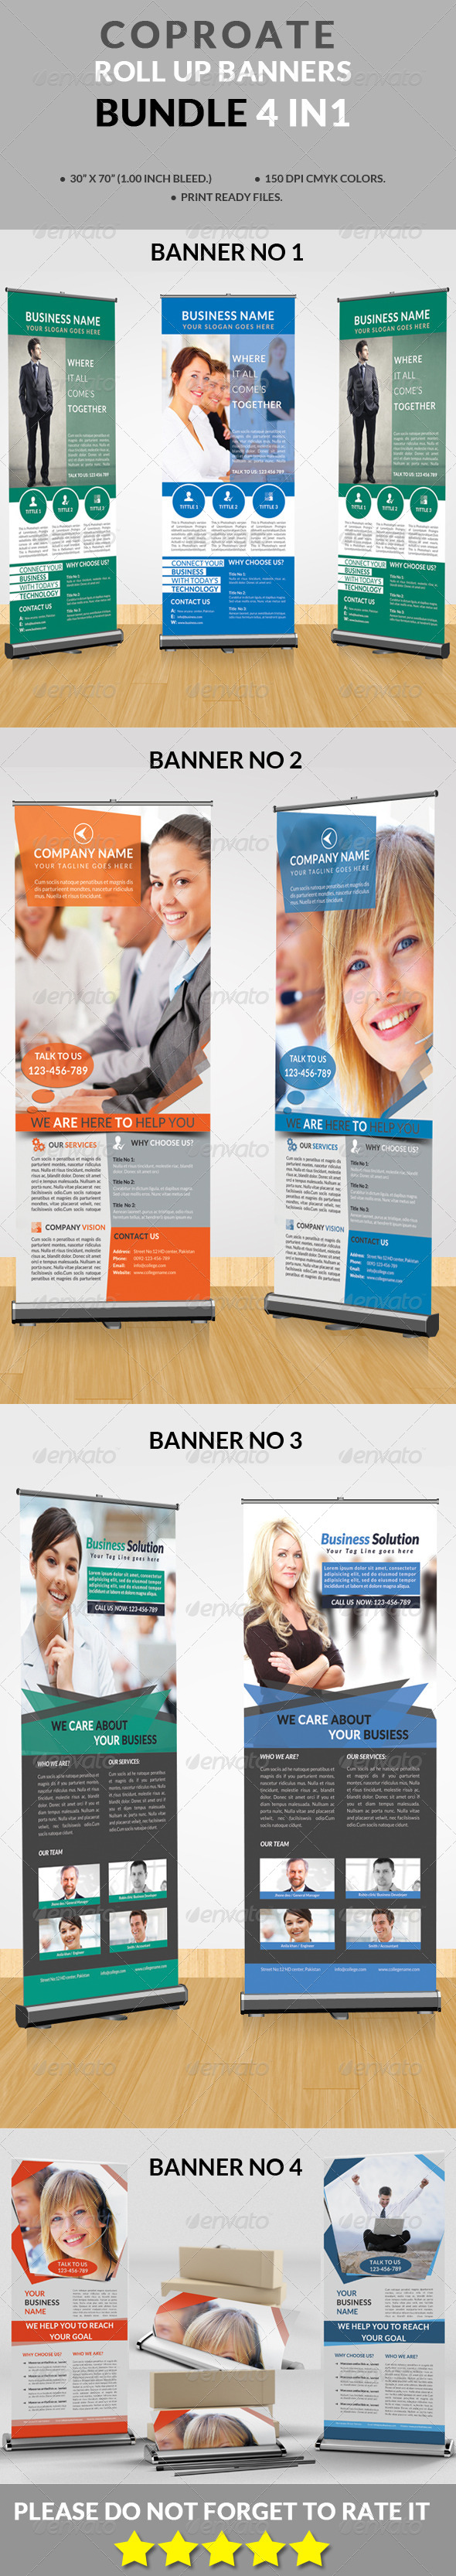 GraphicRiver Corporate Roll-up Banners Bundle 4 in 1 8782817